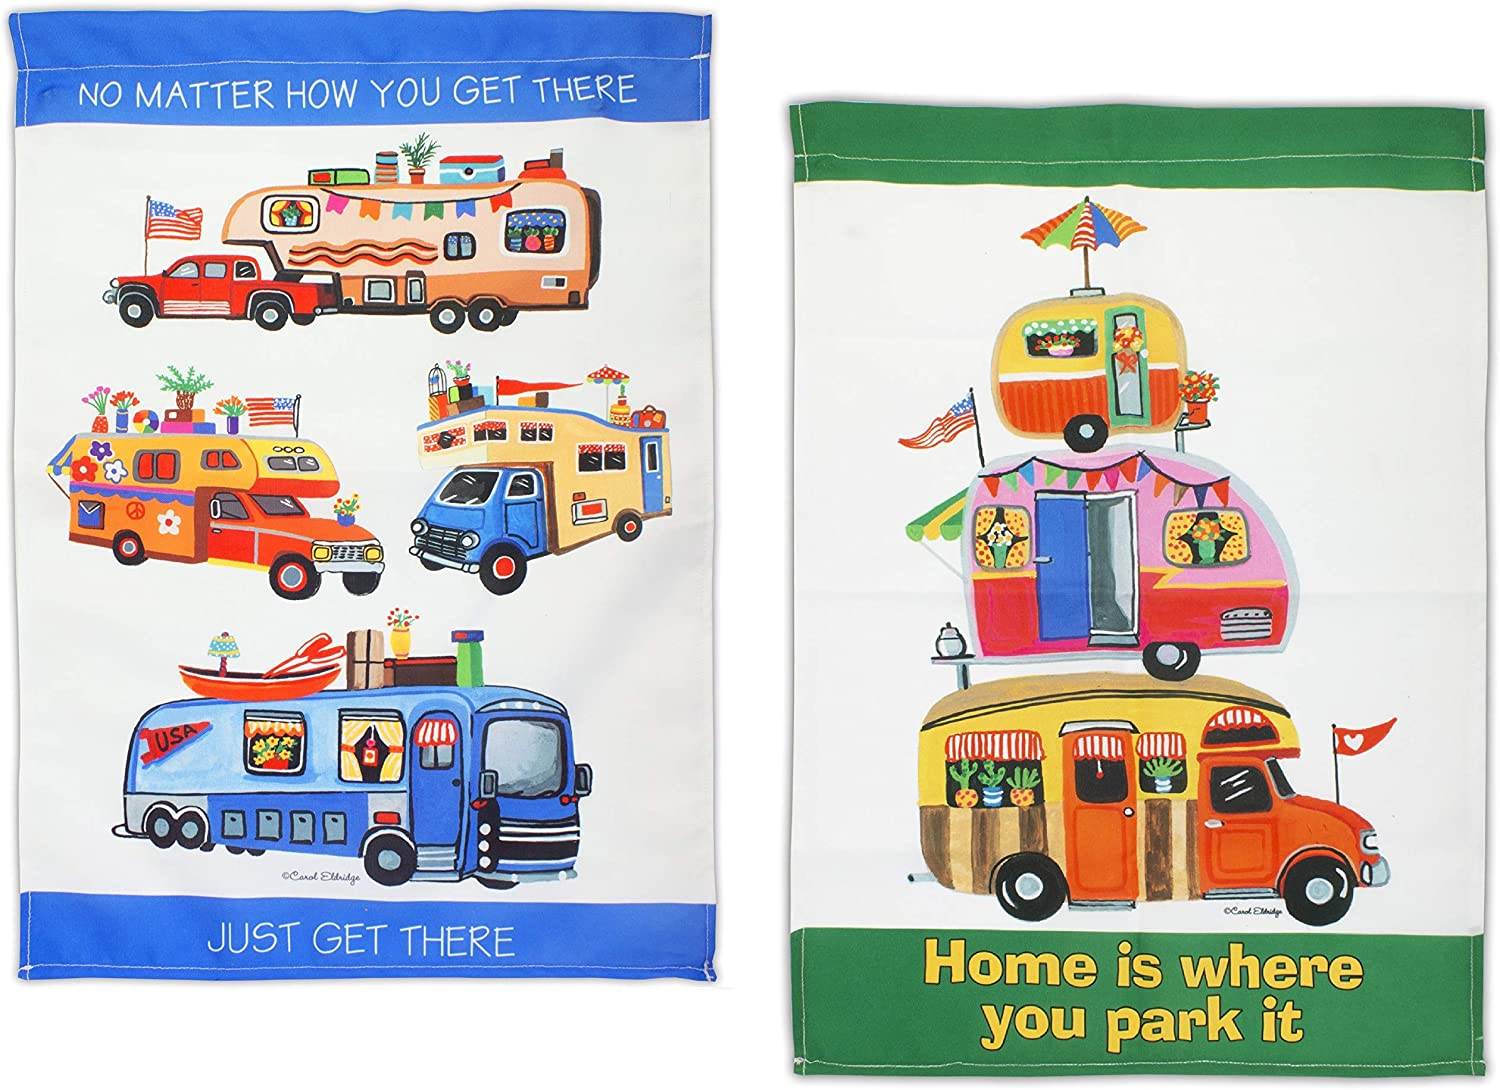 Camper Garden Flag Set | 2 Weather Resistant Camping Flags for Campers, RV, Campsite | Just Get There and Home is Where You Park Theme